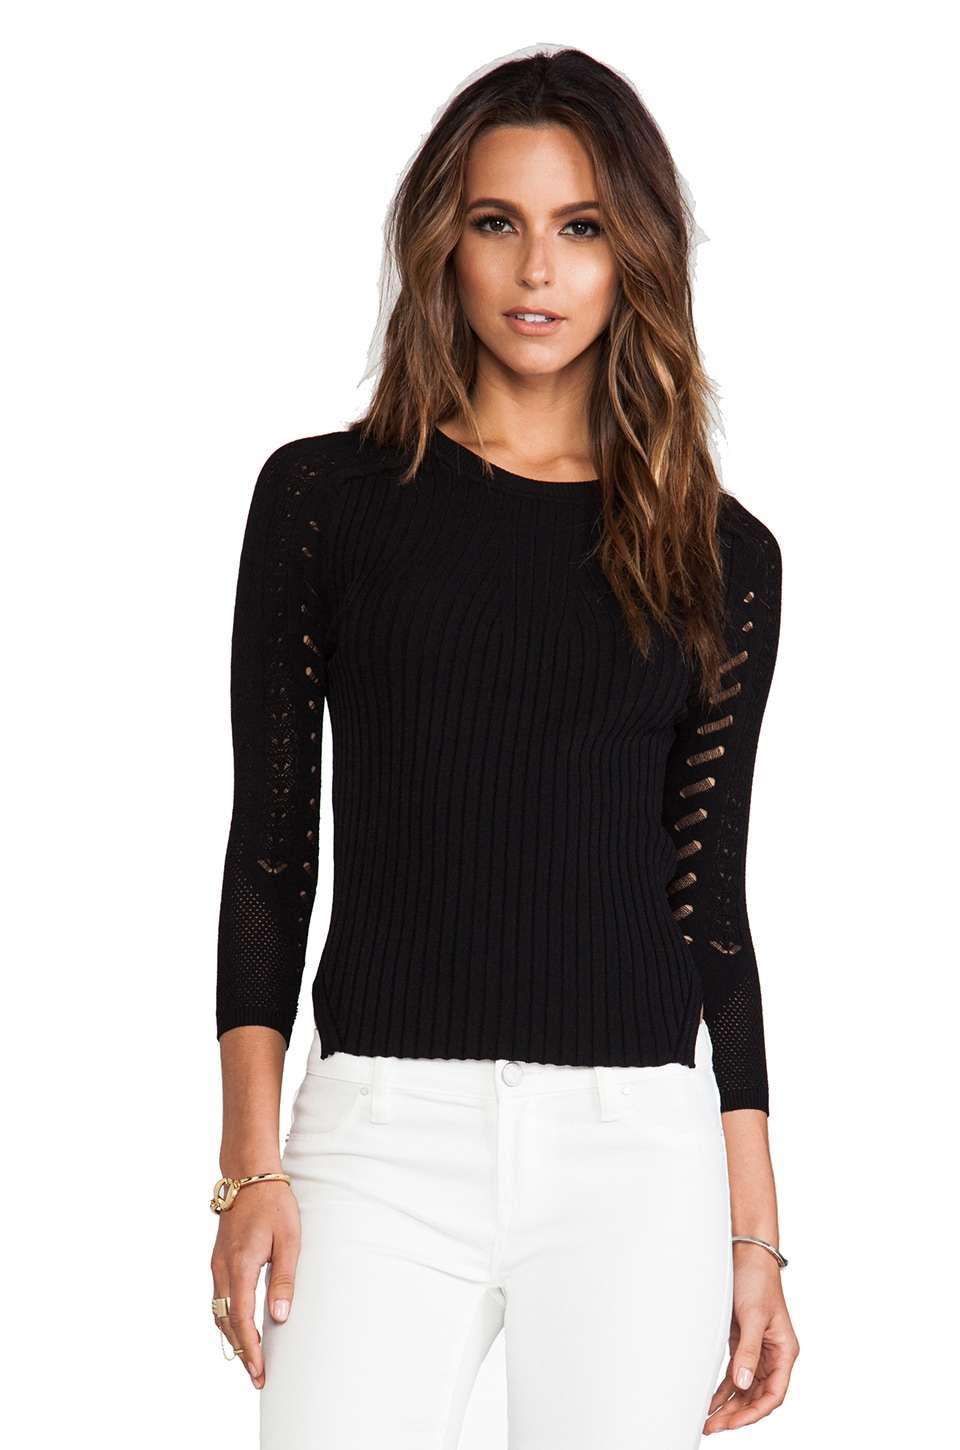 Autumn Cashmere Curved Hem Sweater in Black